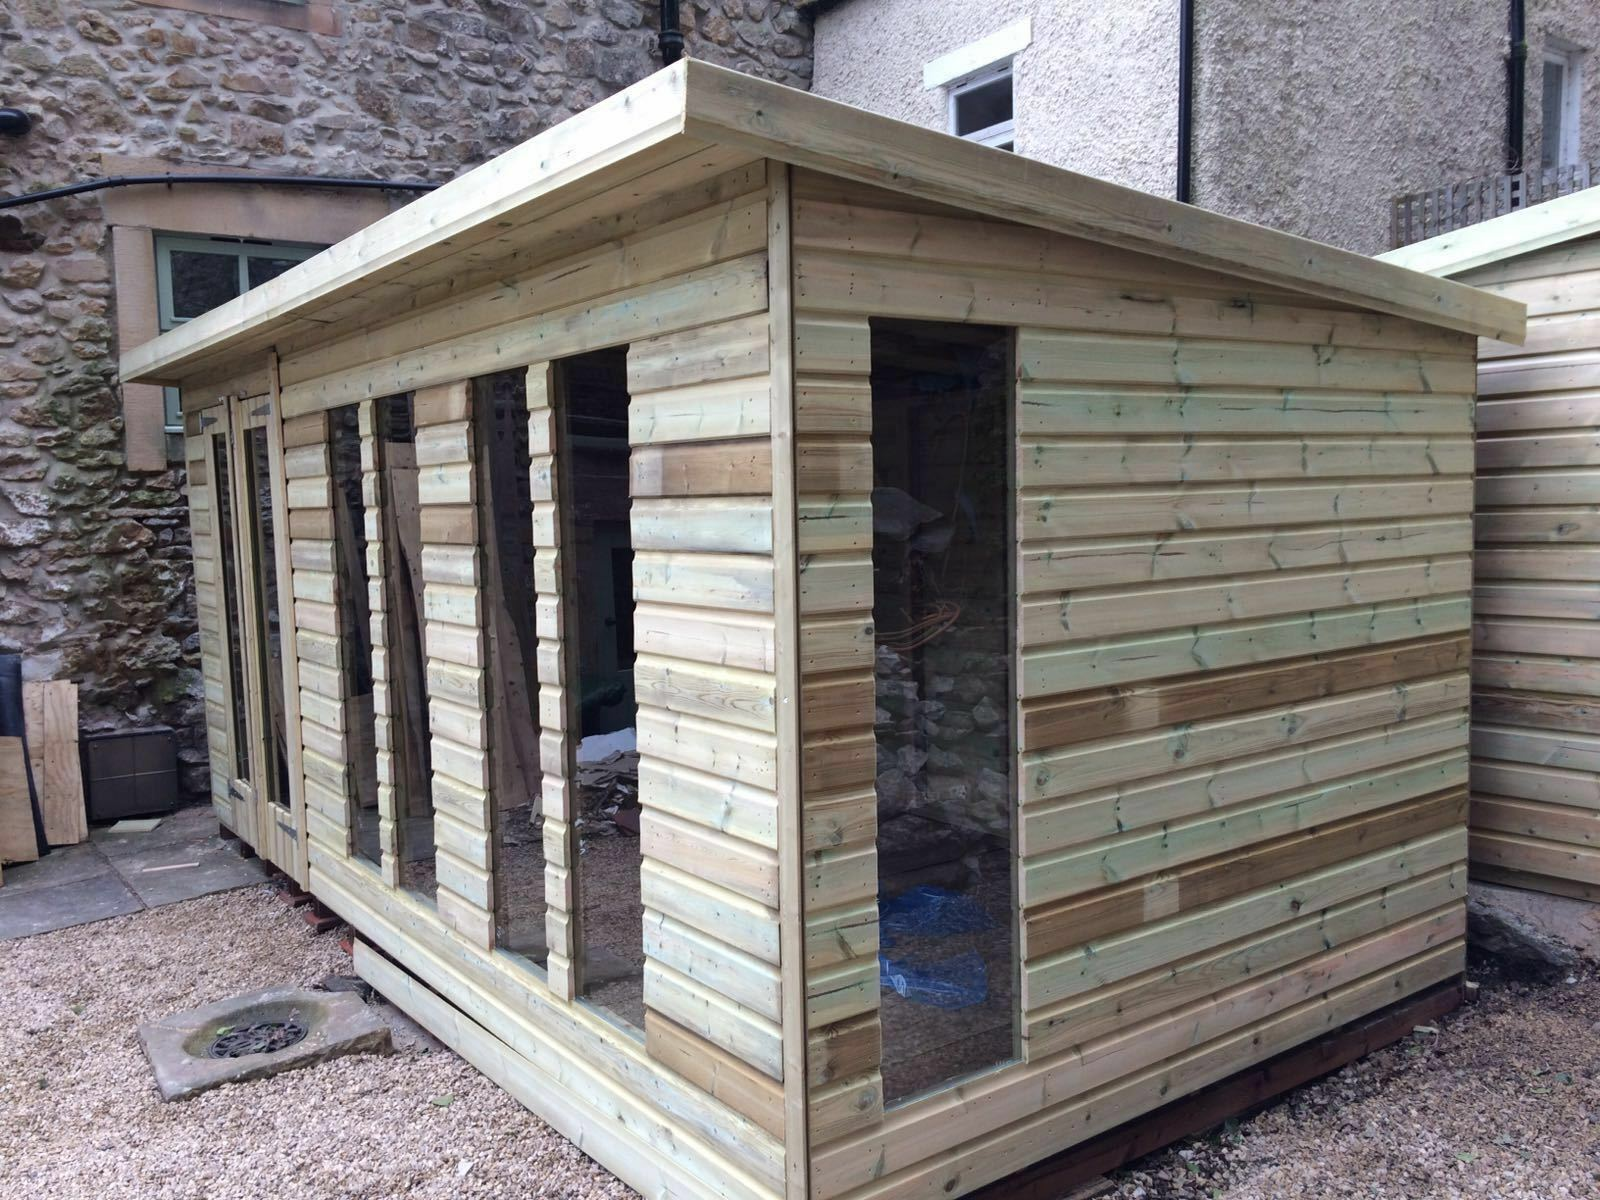 16 x 8ft Wooden Garden Tanalised Summerhouse with 2ft Flat ...